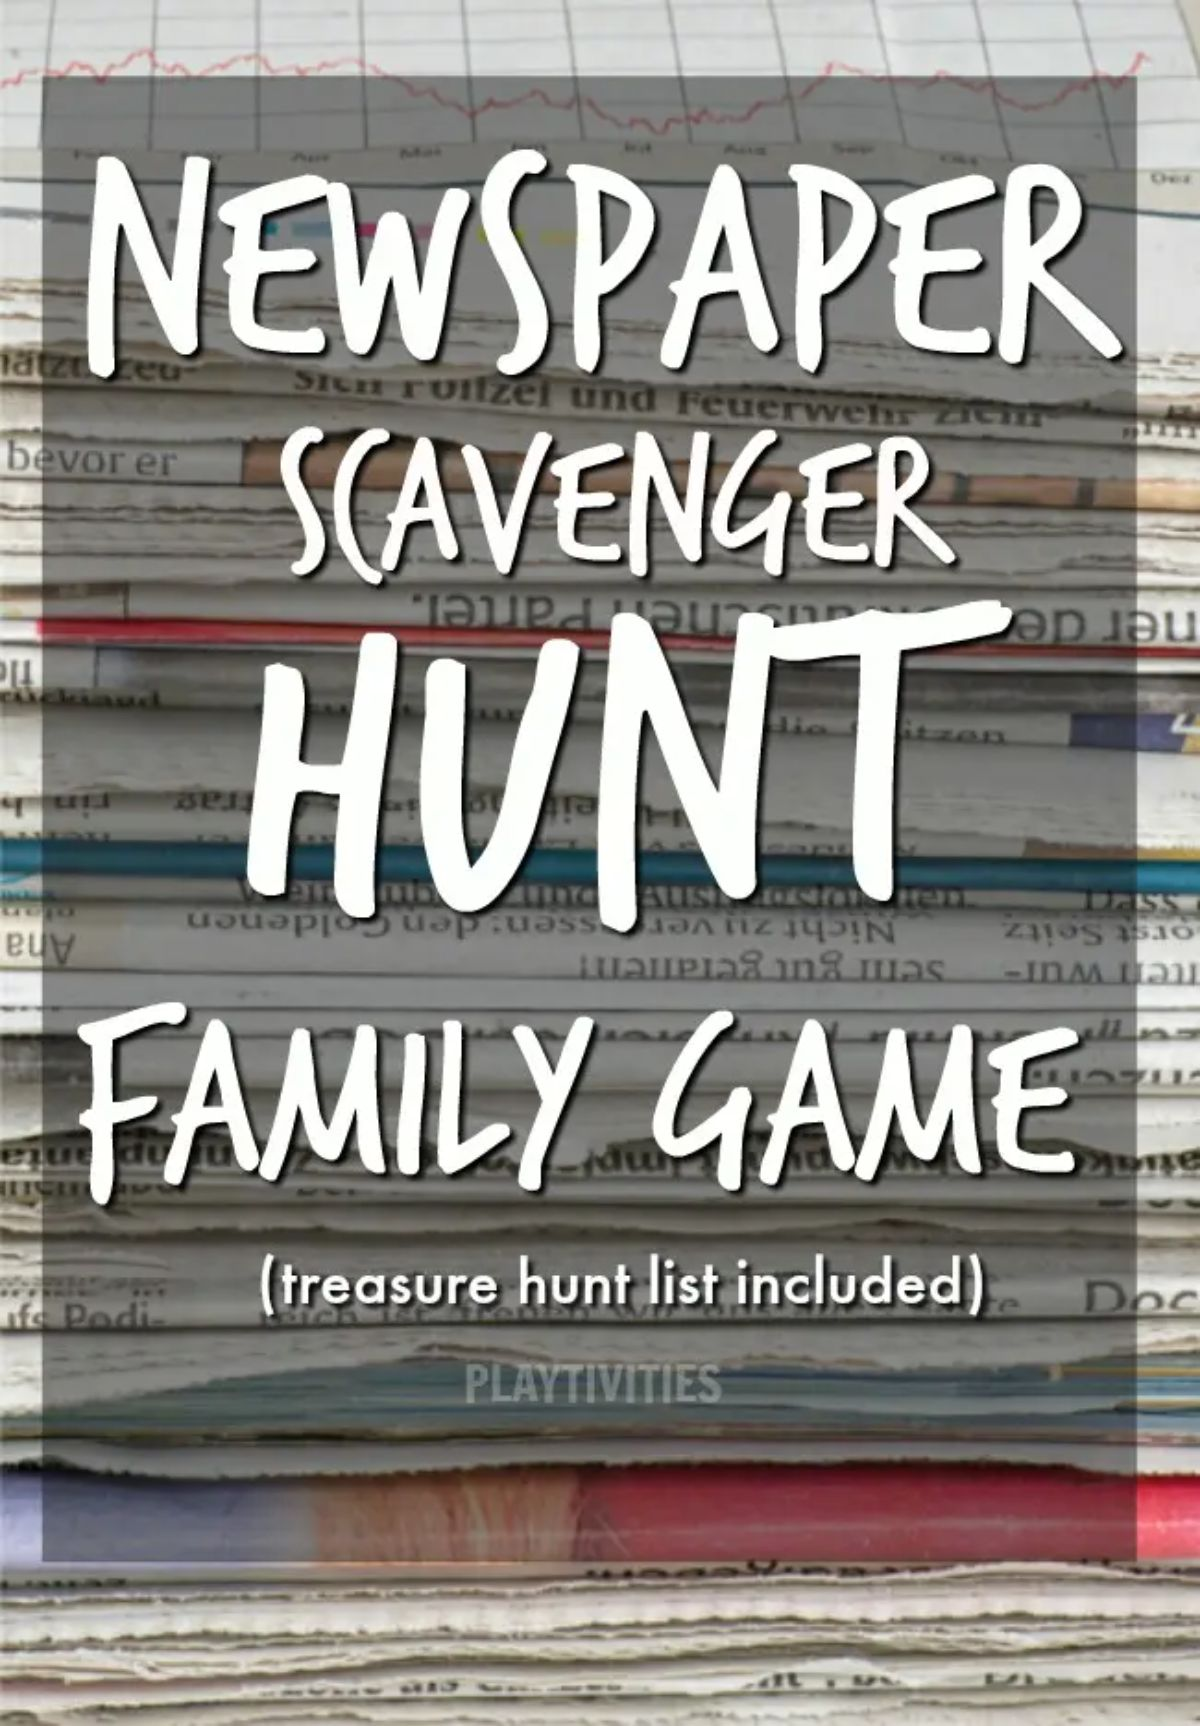 """The text reads """"Newspaper scavenger hunt family game (treasure hunt list included)"""" on a gret background with a pile of newspapers behind them"""